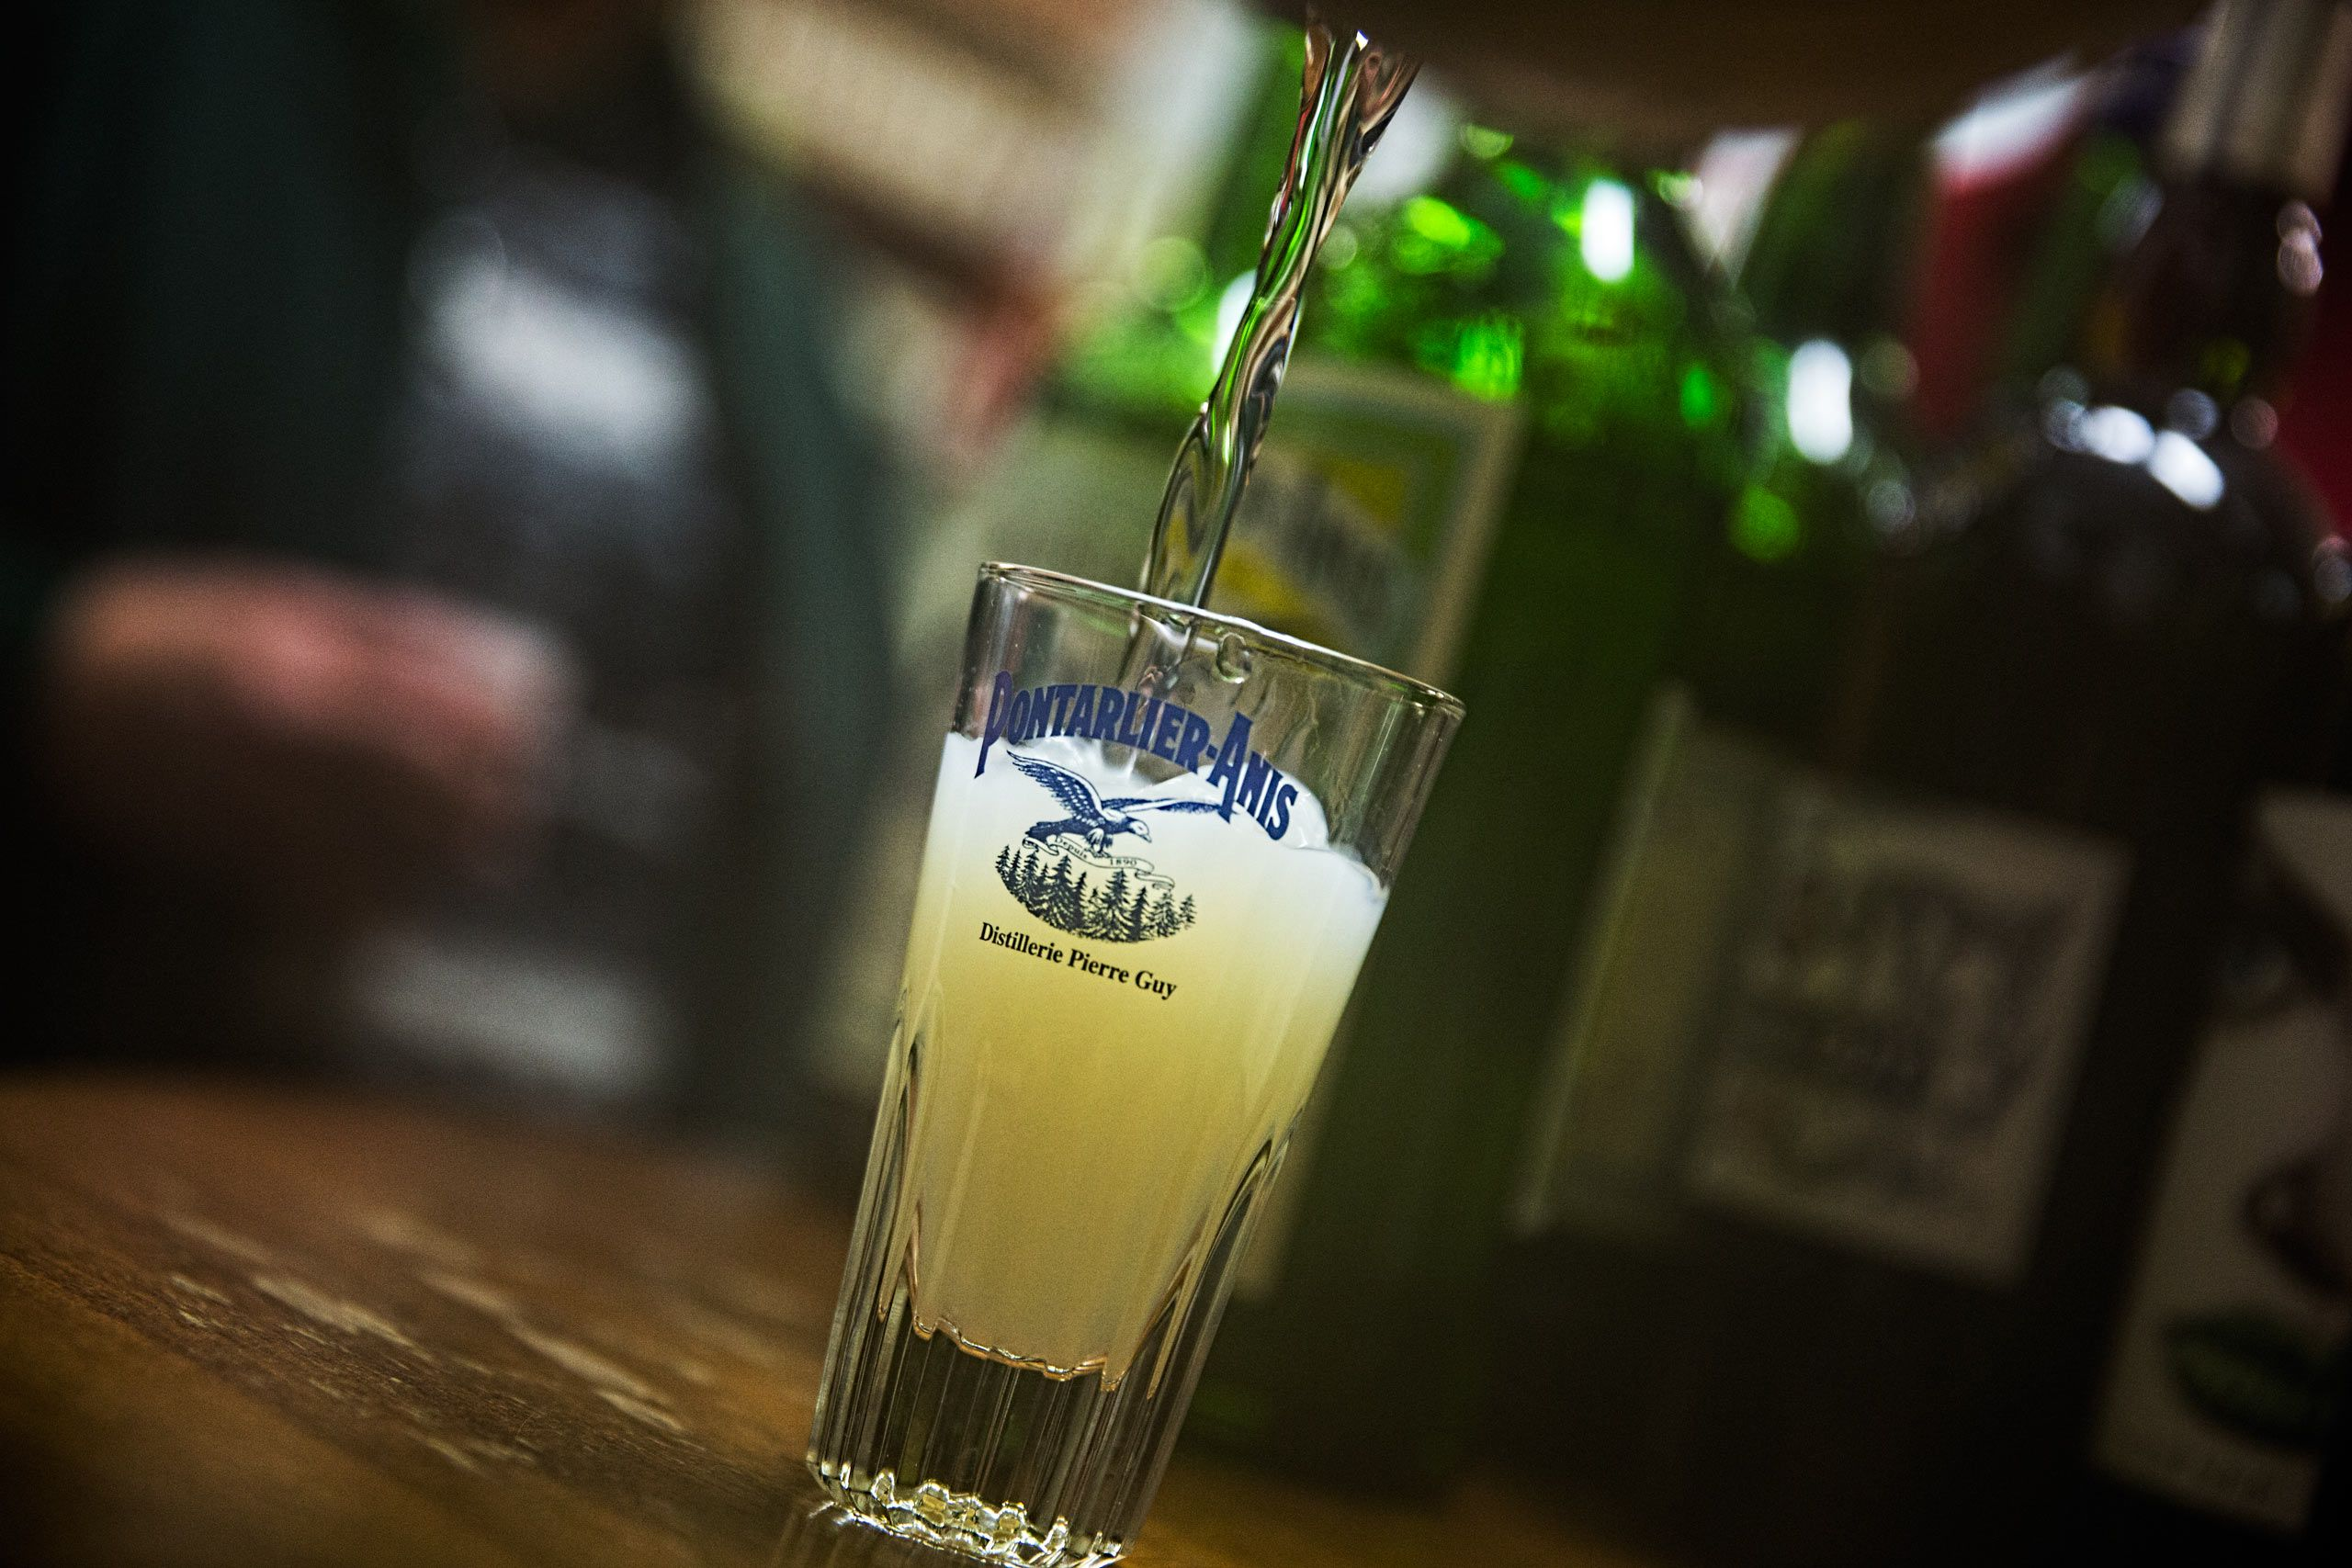 Absinthe Being Poured Into a Glass